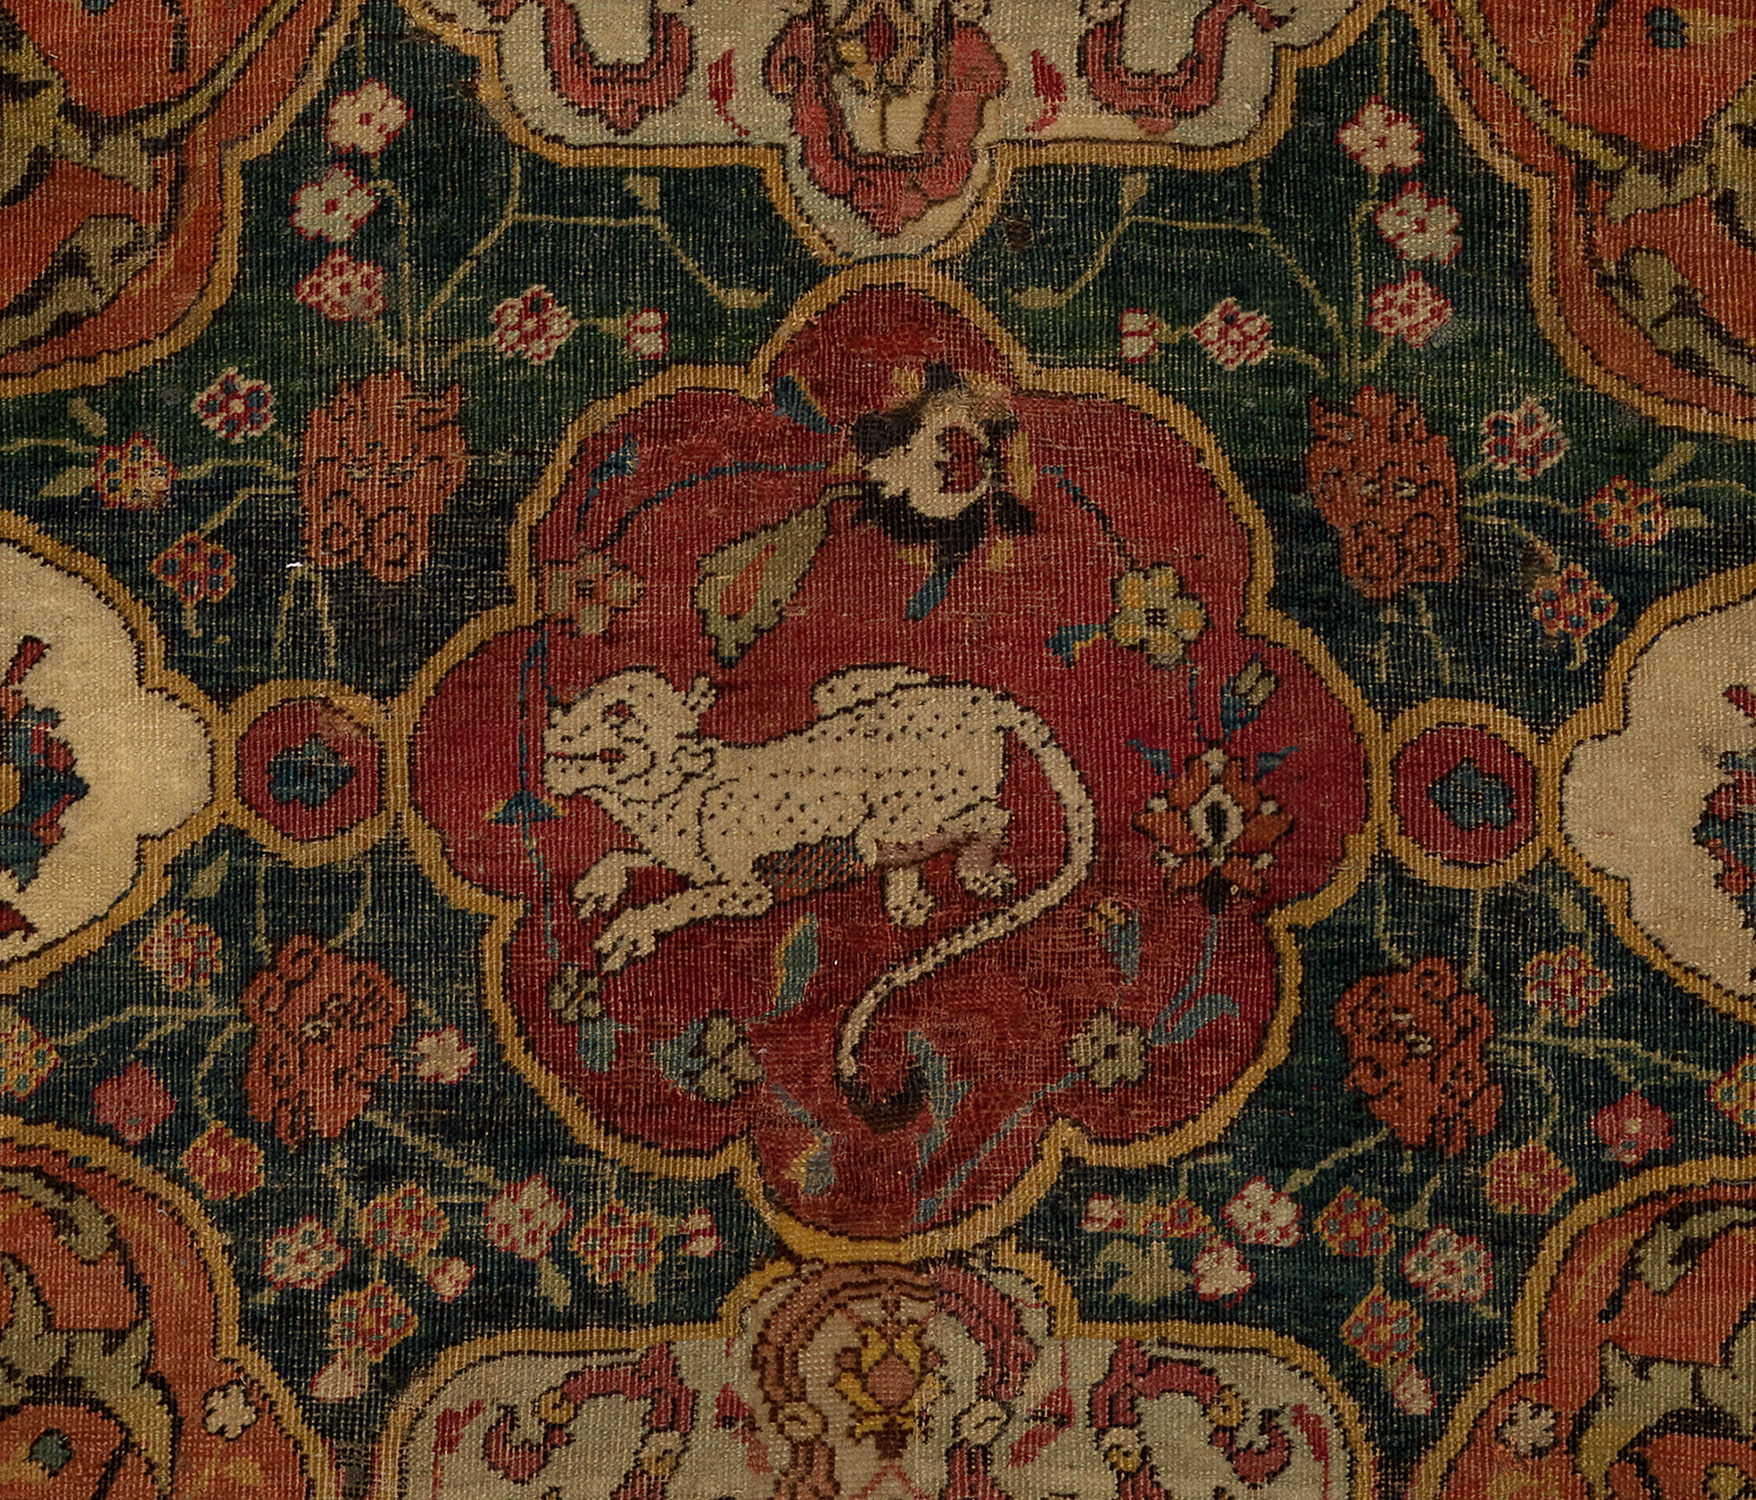 The Seley Carpet